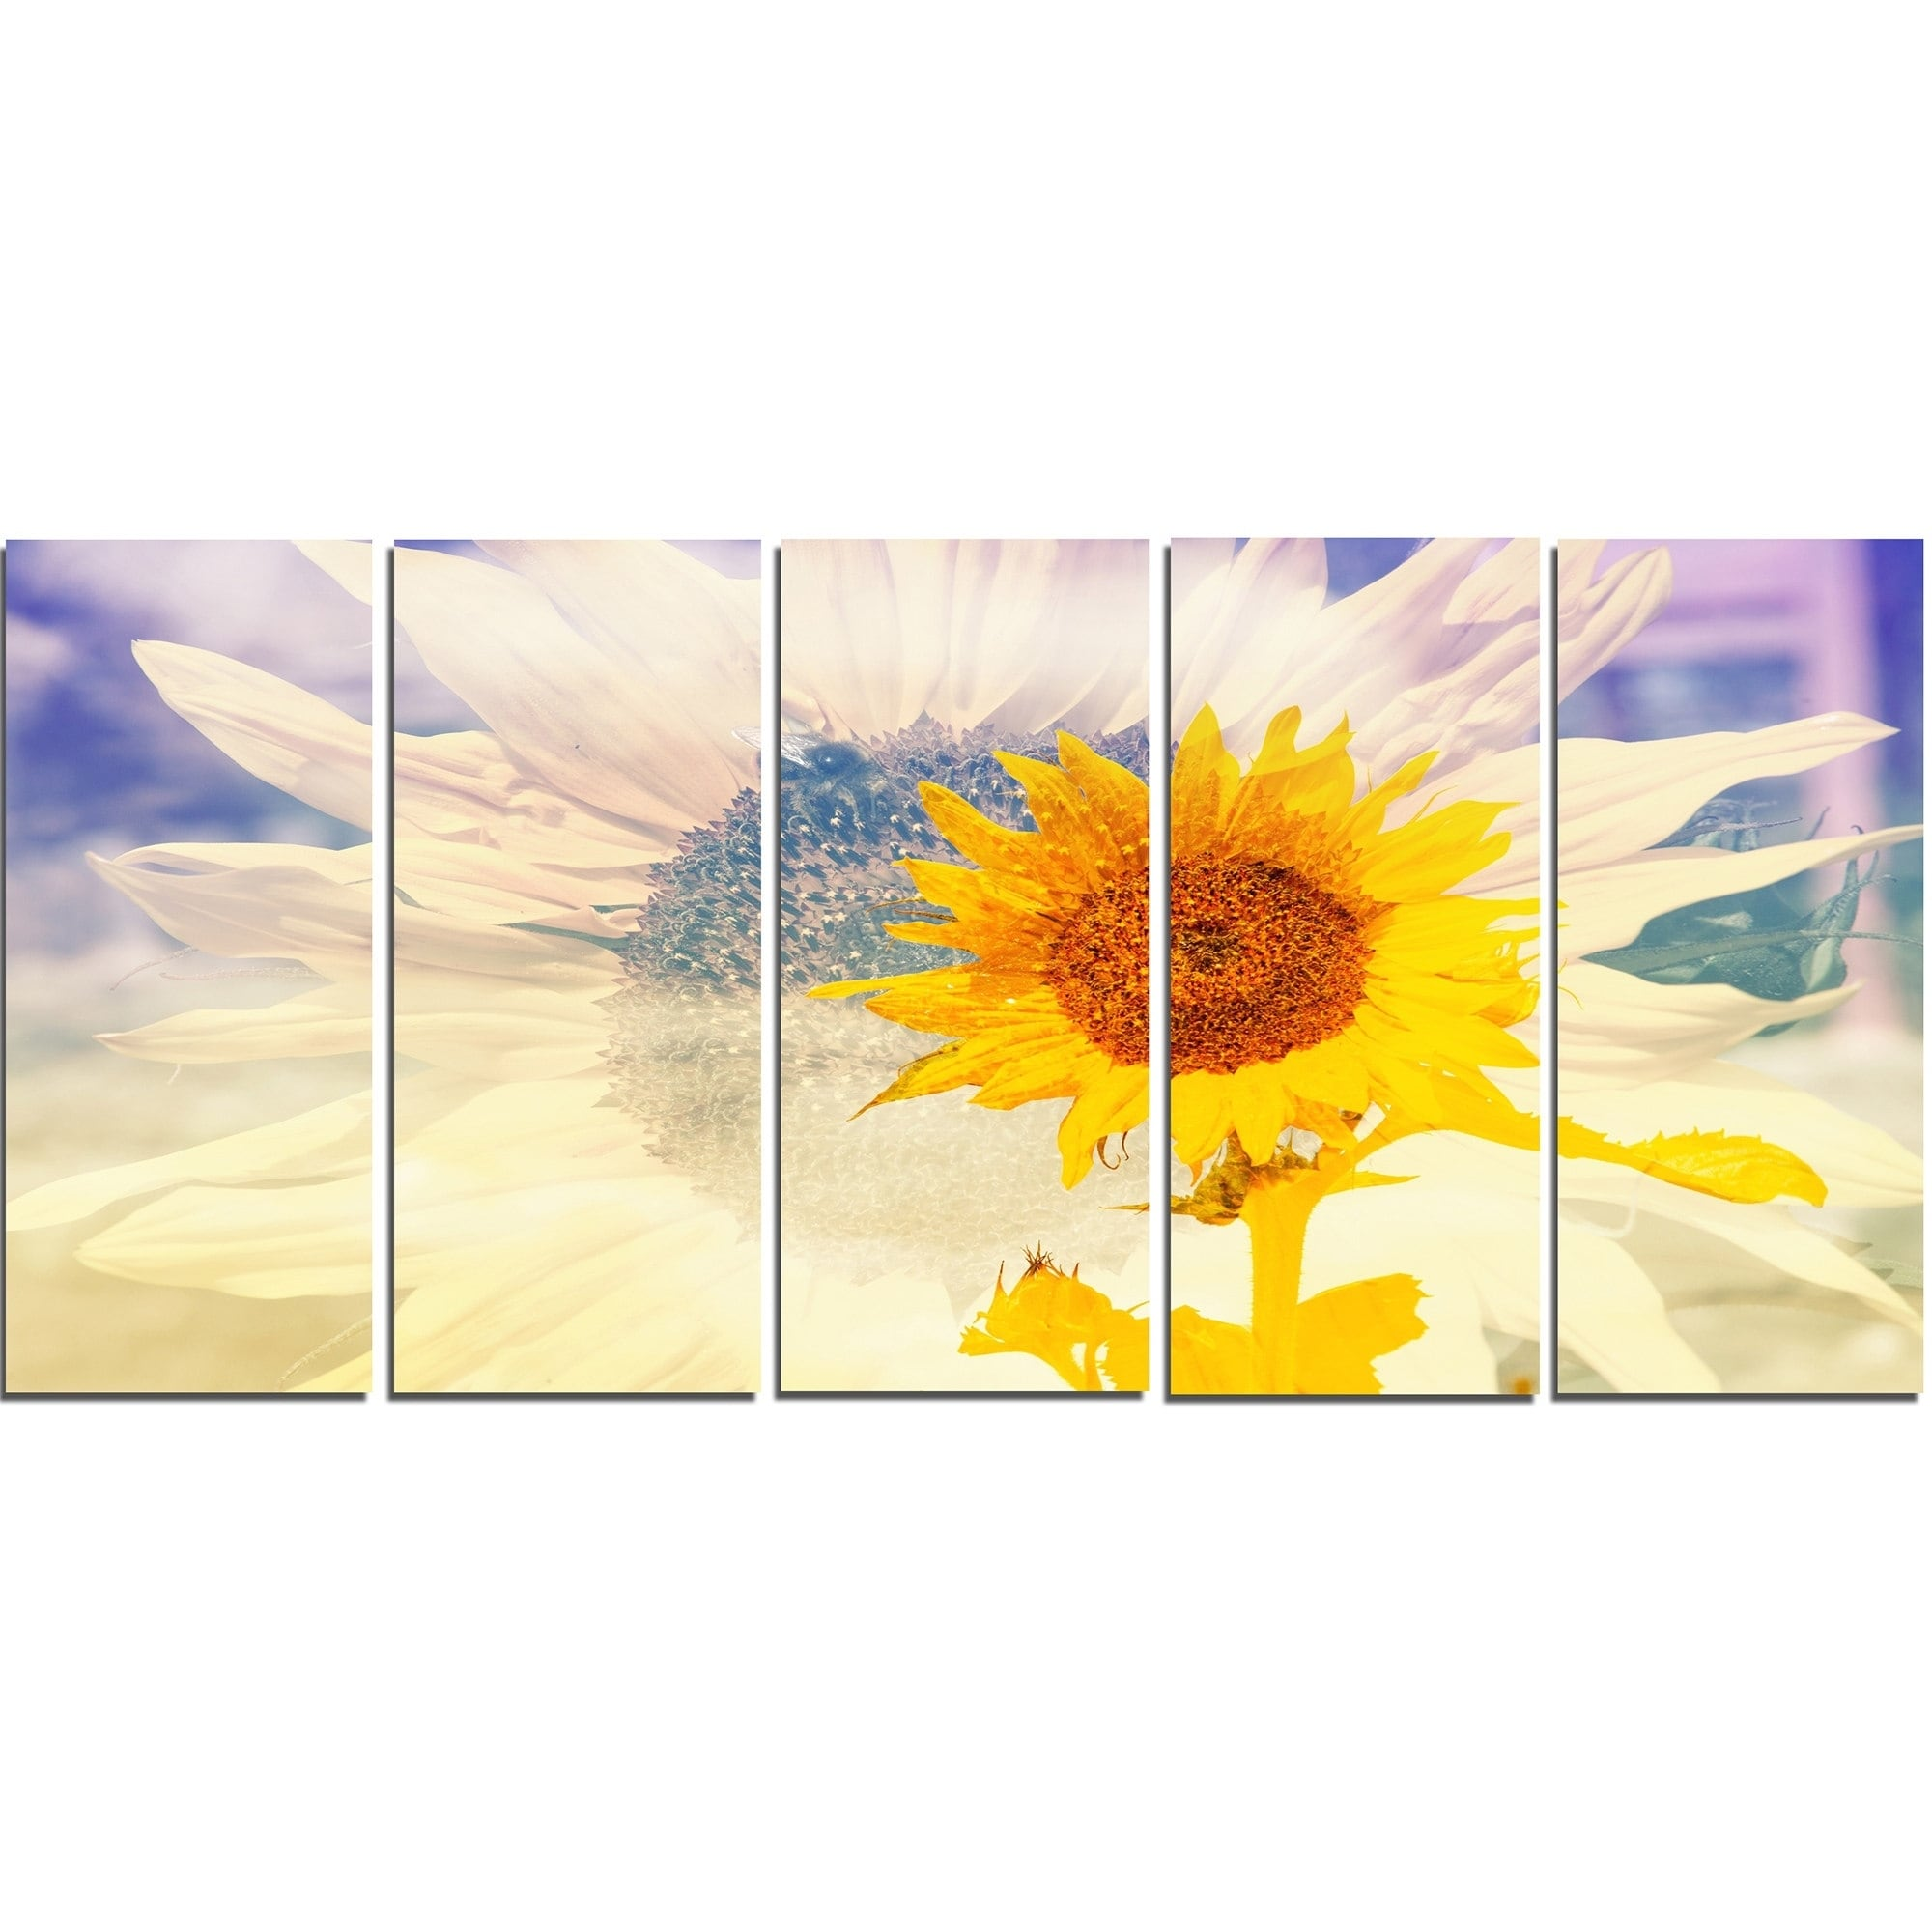 Excellent Metal Floral Wall Decor Contemporary - The Wall Art ...